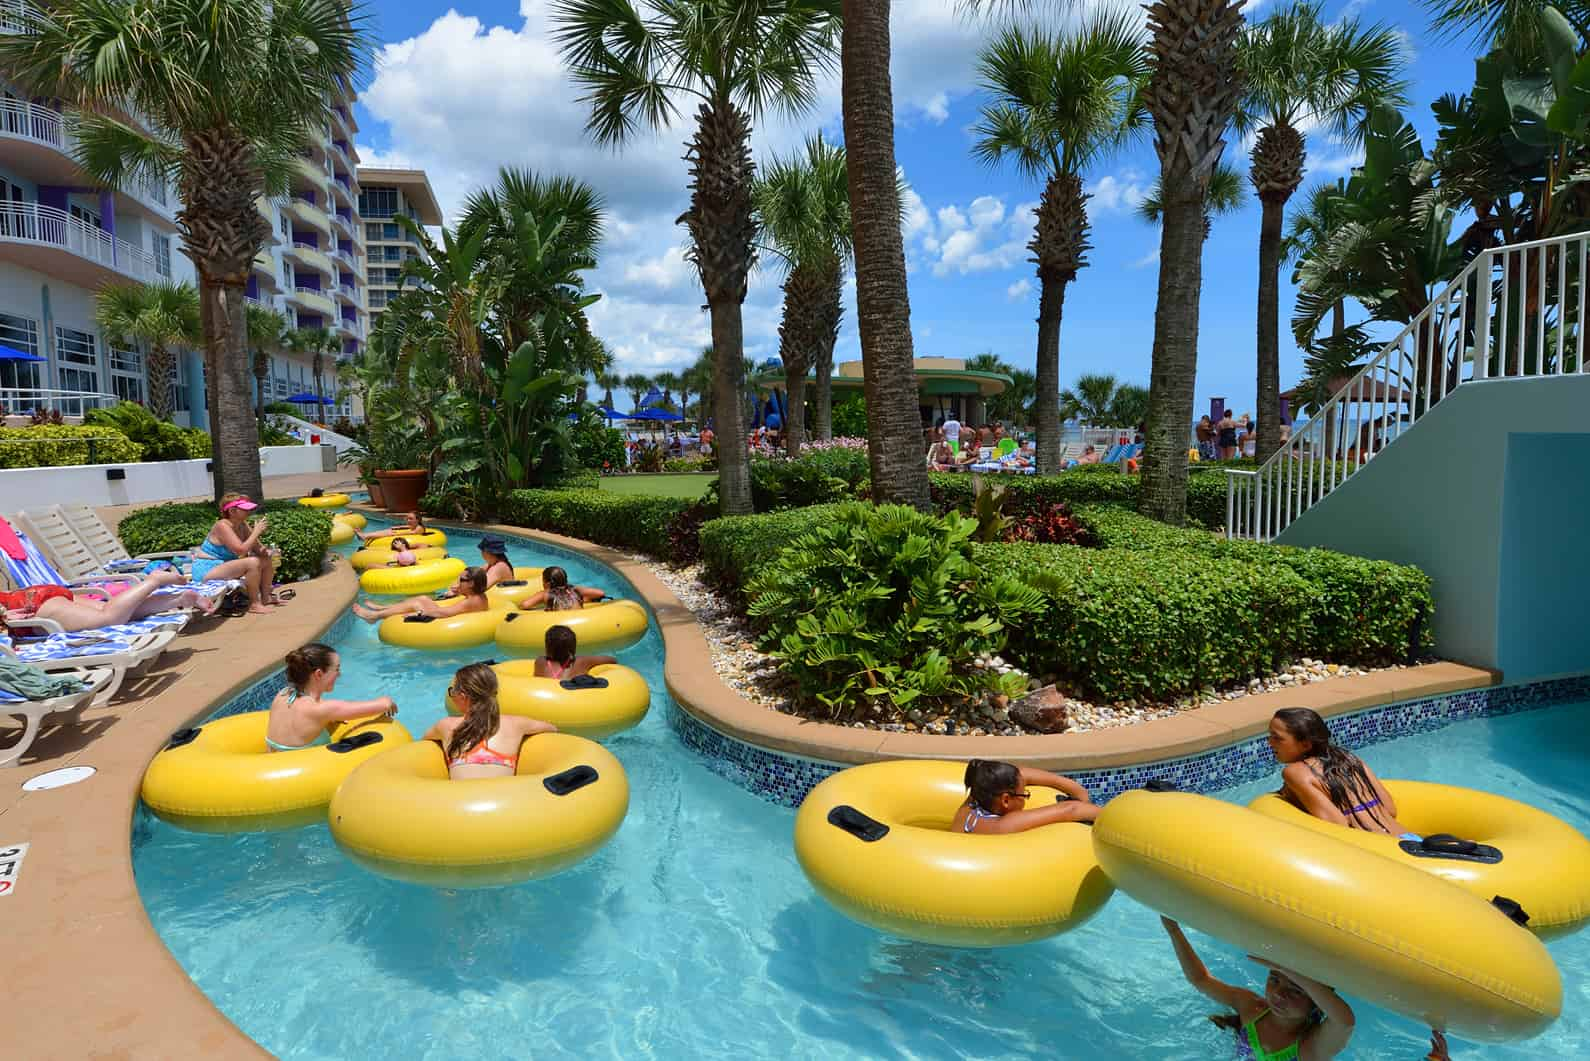 10 Reasons To Make Daytona Beach Your Weekday Getaway!